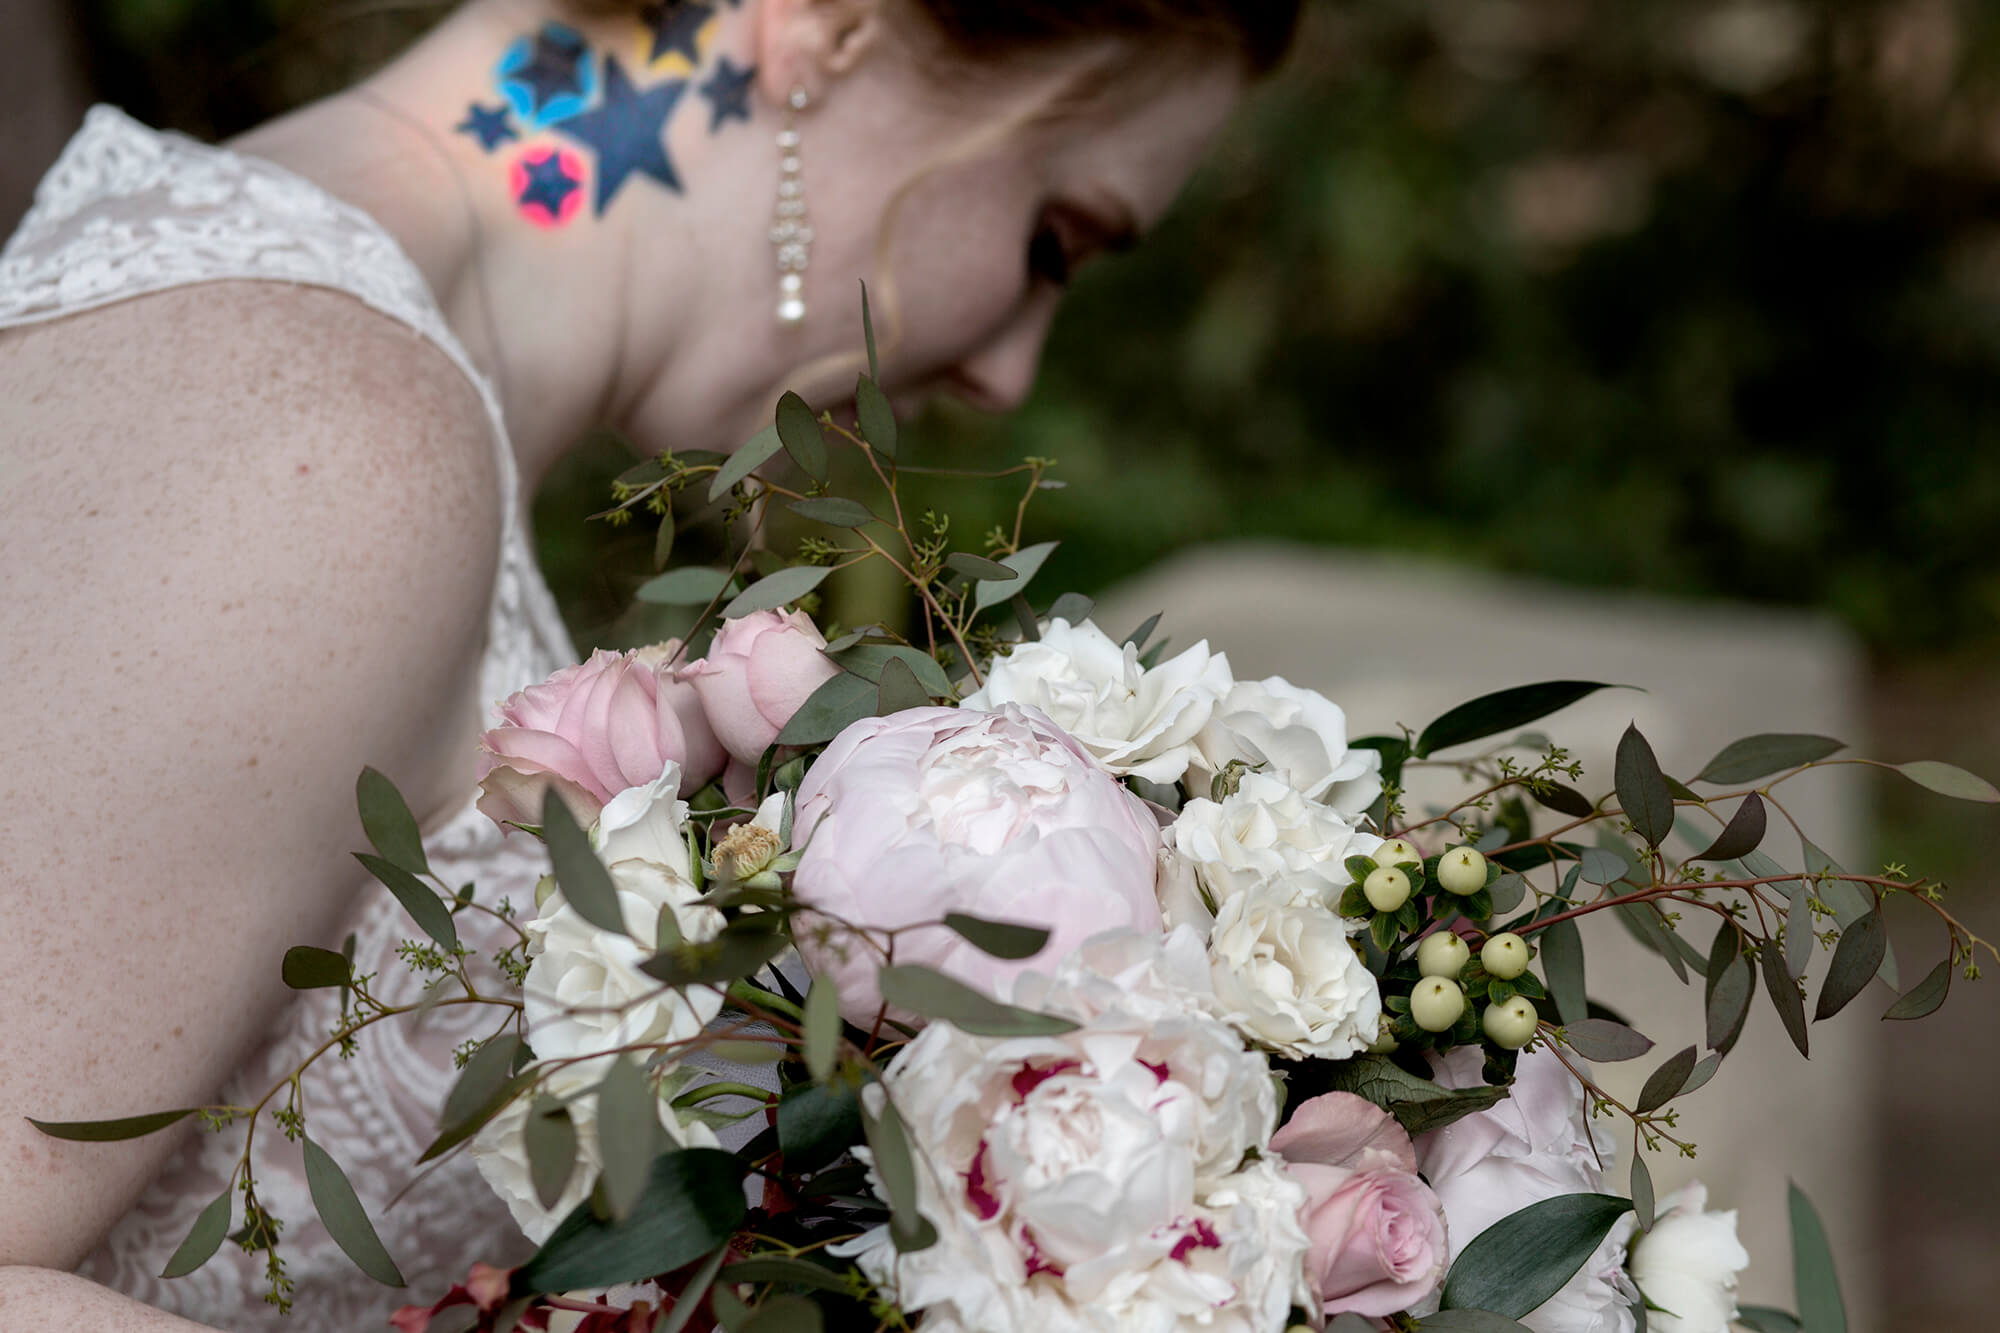 Wedding photography of the close-up of the bride's neck tattoo and flowers